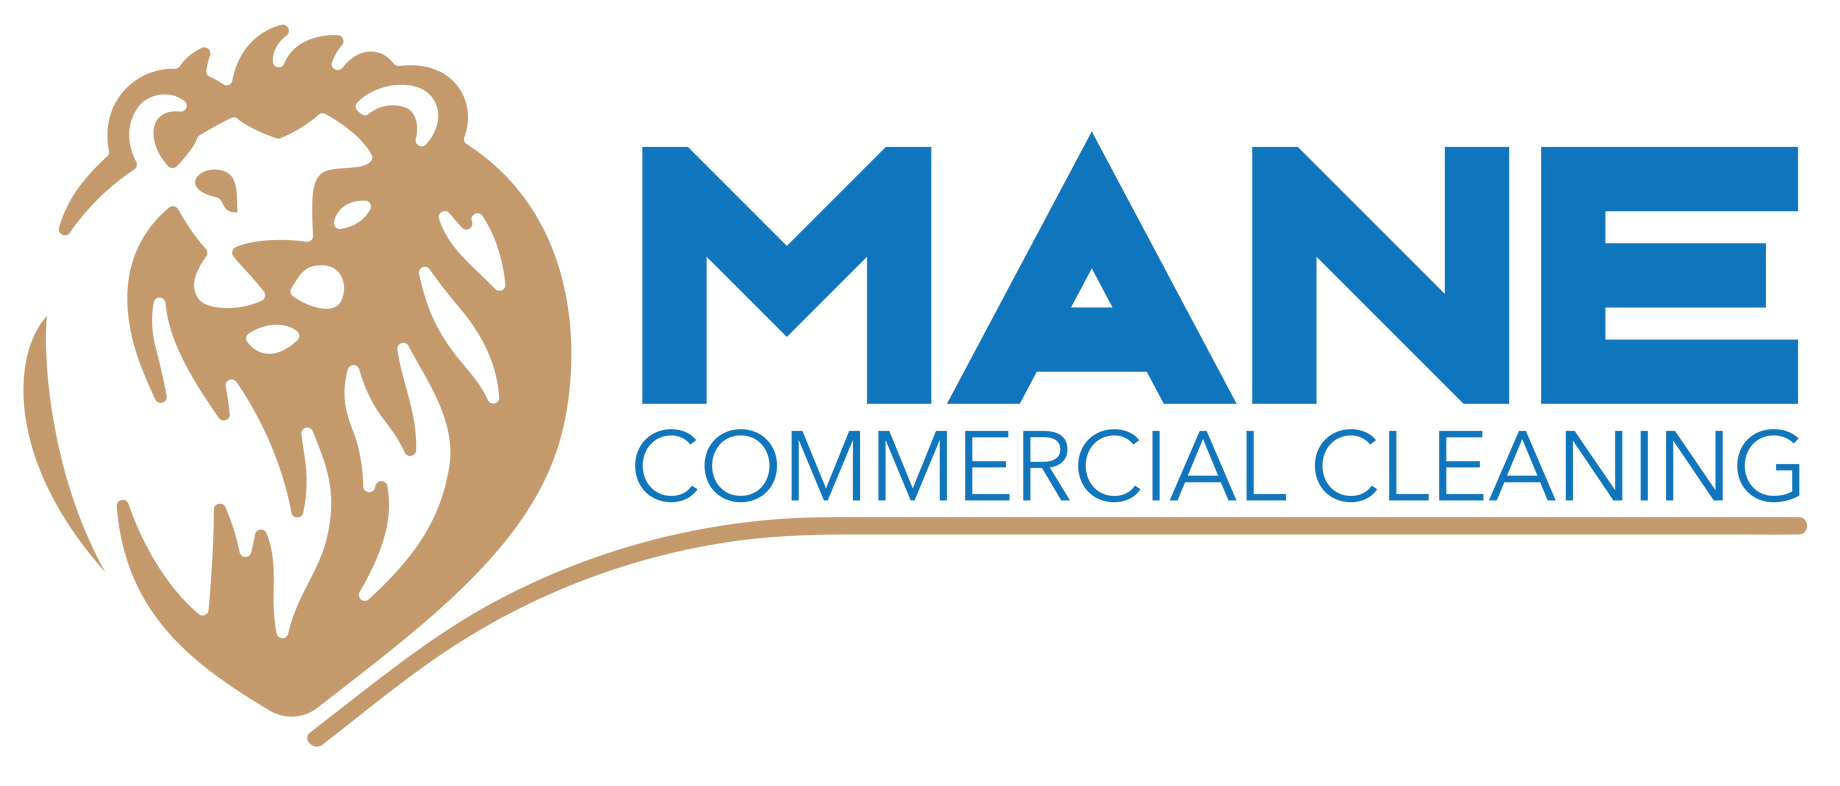 Mane Commercial Cleaning